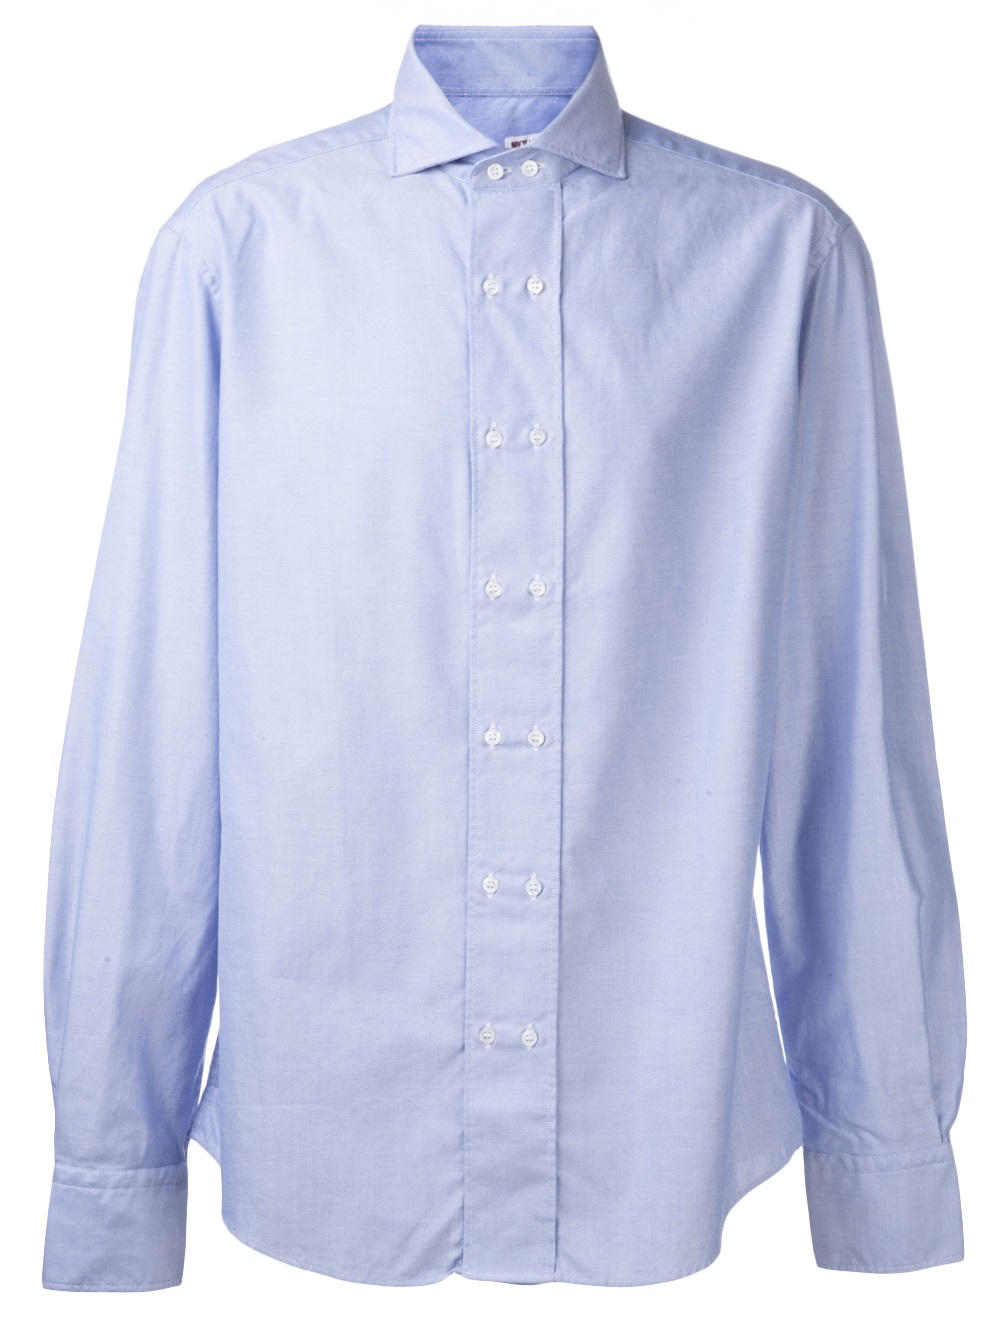 Free shipping and returns on Men's Double Button Dress Shirts at shopnow-vjpmehag.cf